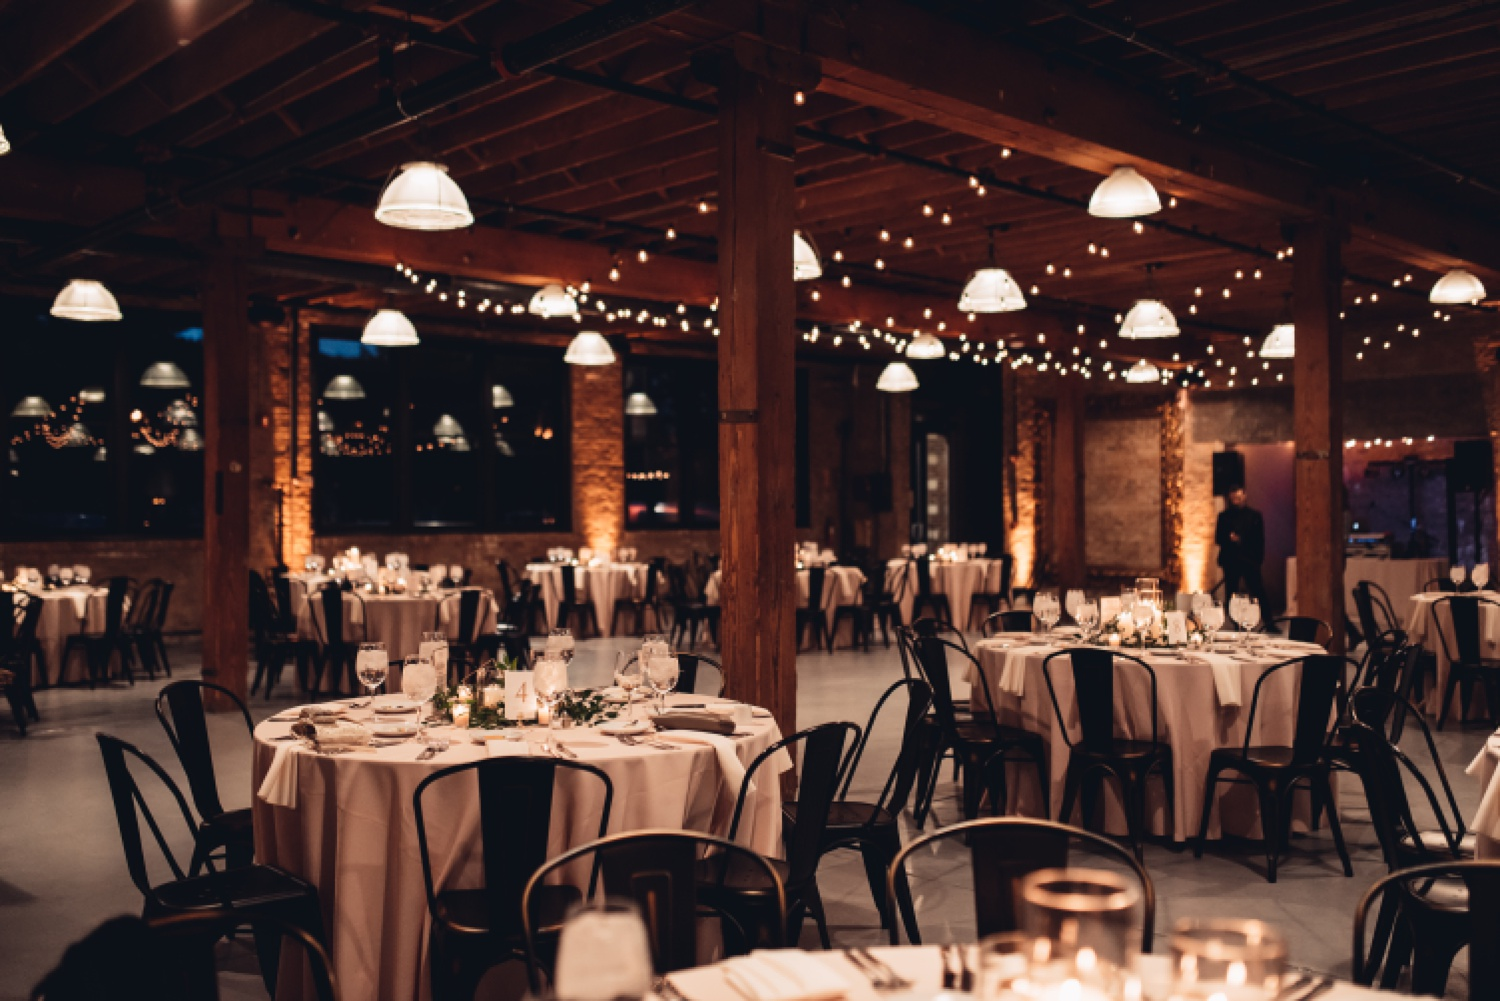 Artifact Events Chicago Wedding - The Adamkovi reception space